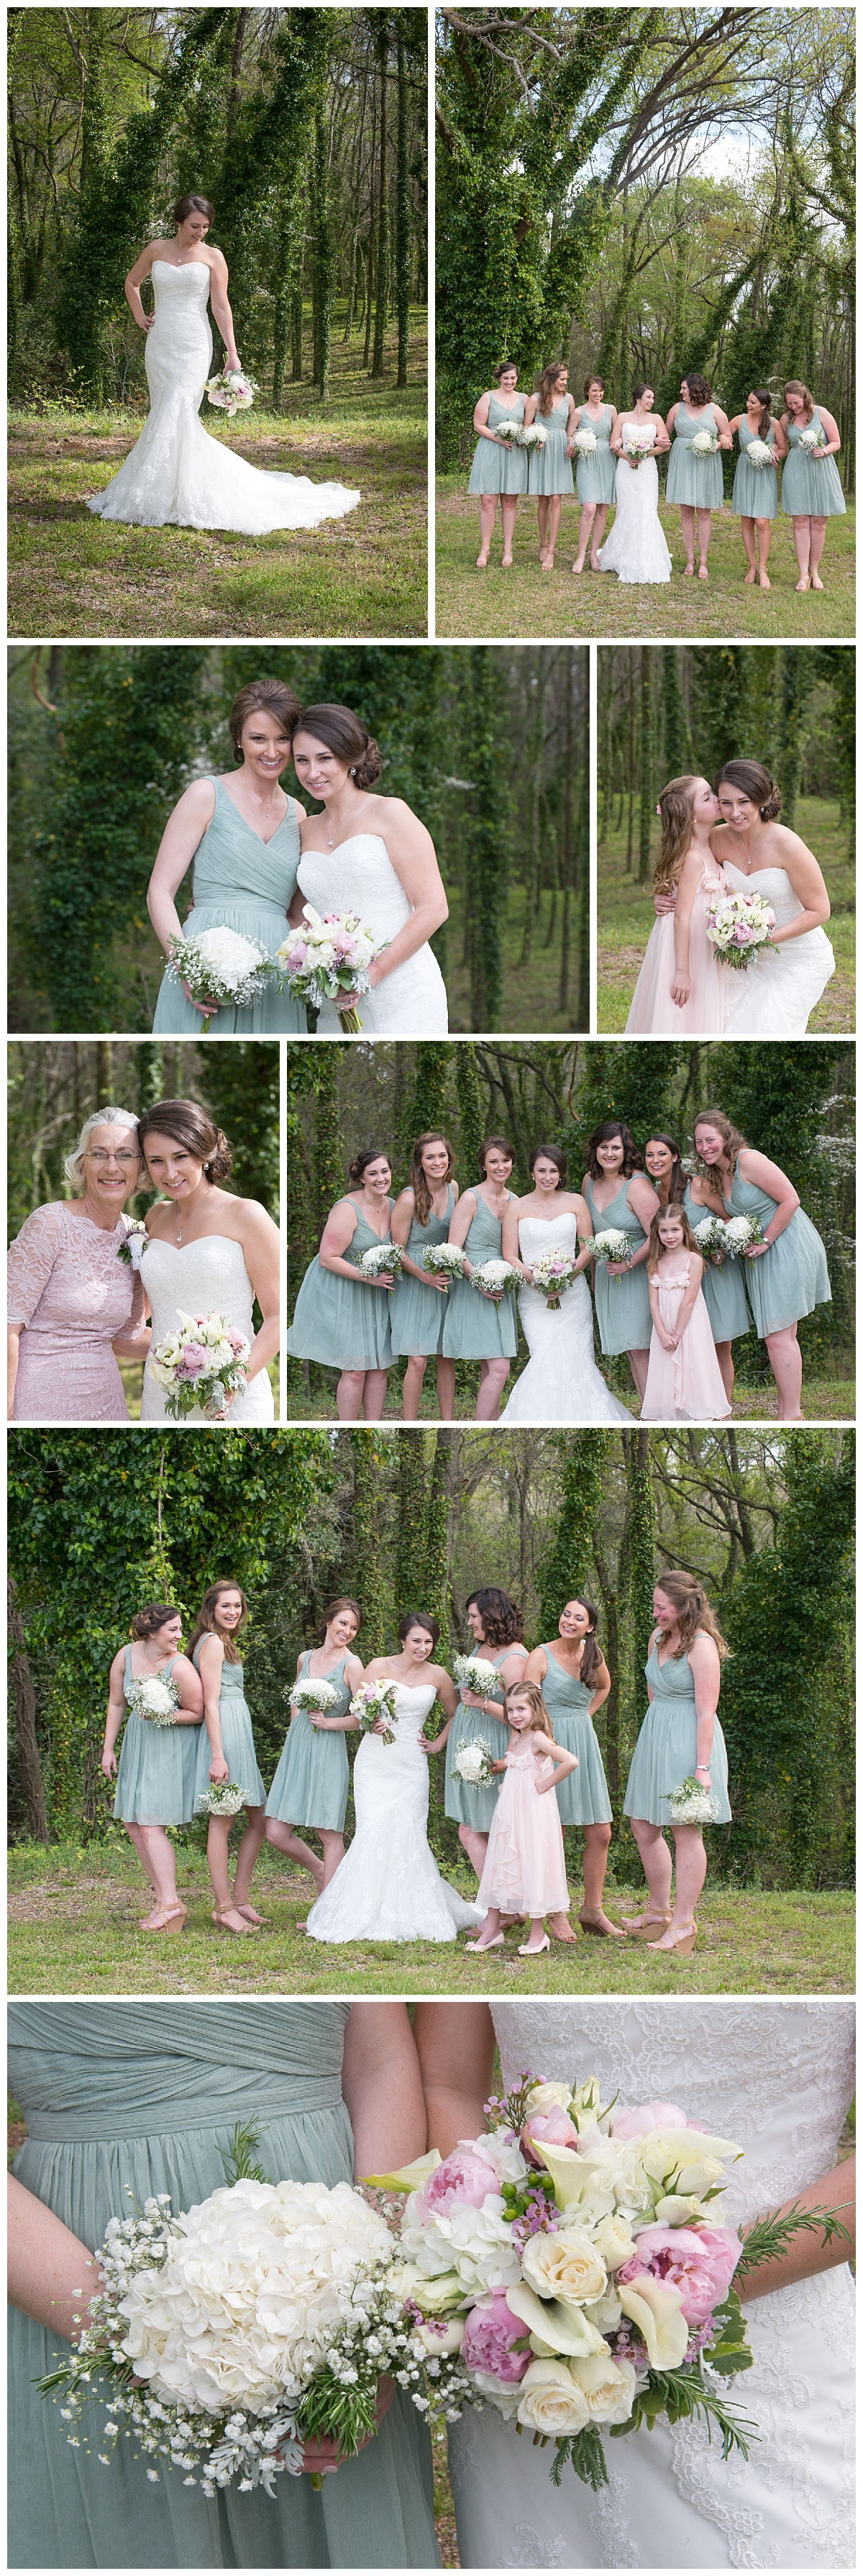 Bridesmaids in mint short dresses with white bouquets